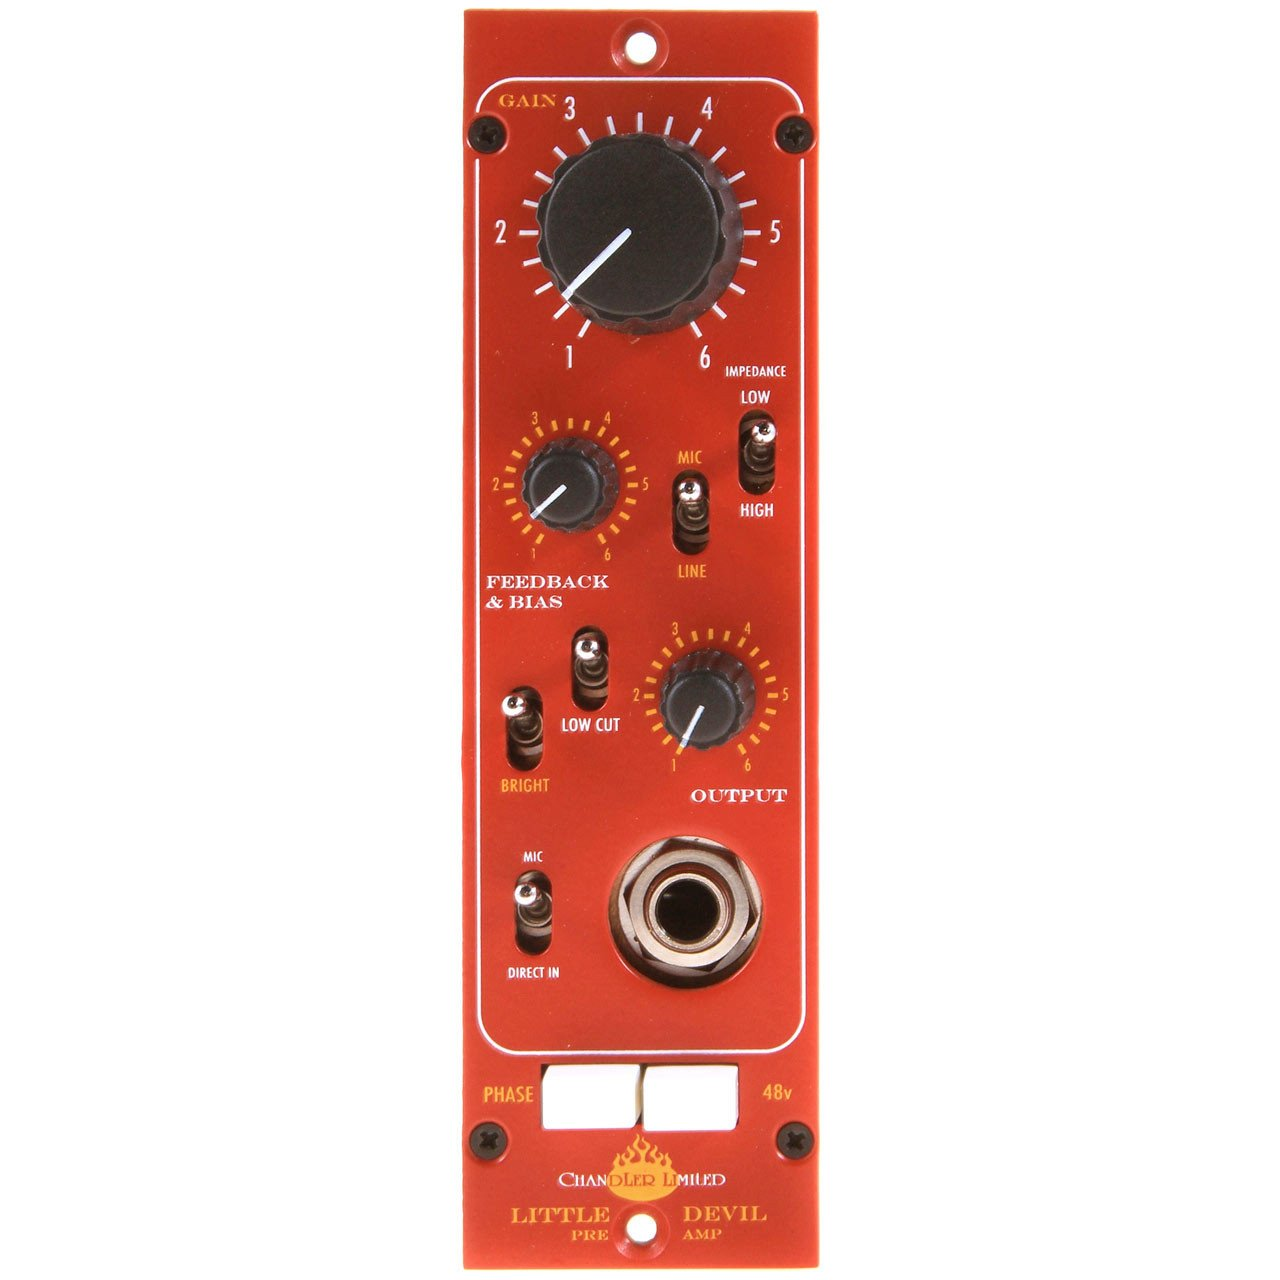 500 Series - Chandler Limited Little Devil Pre Amp 500 Series